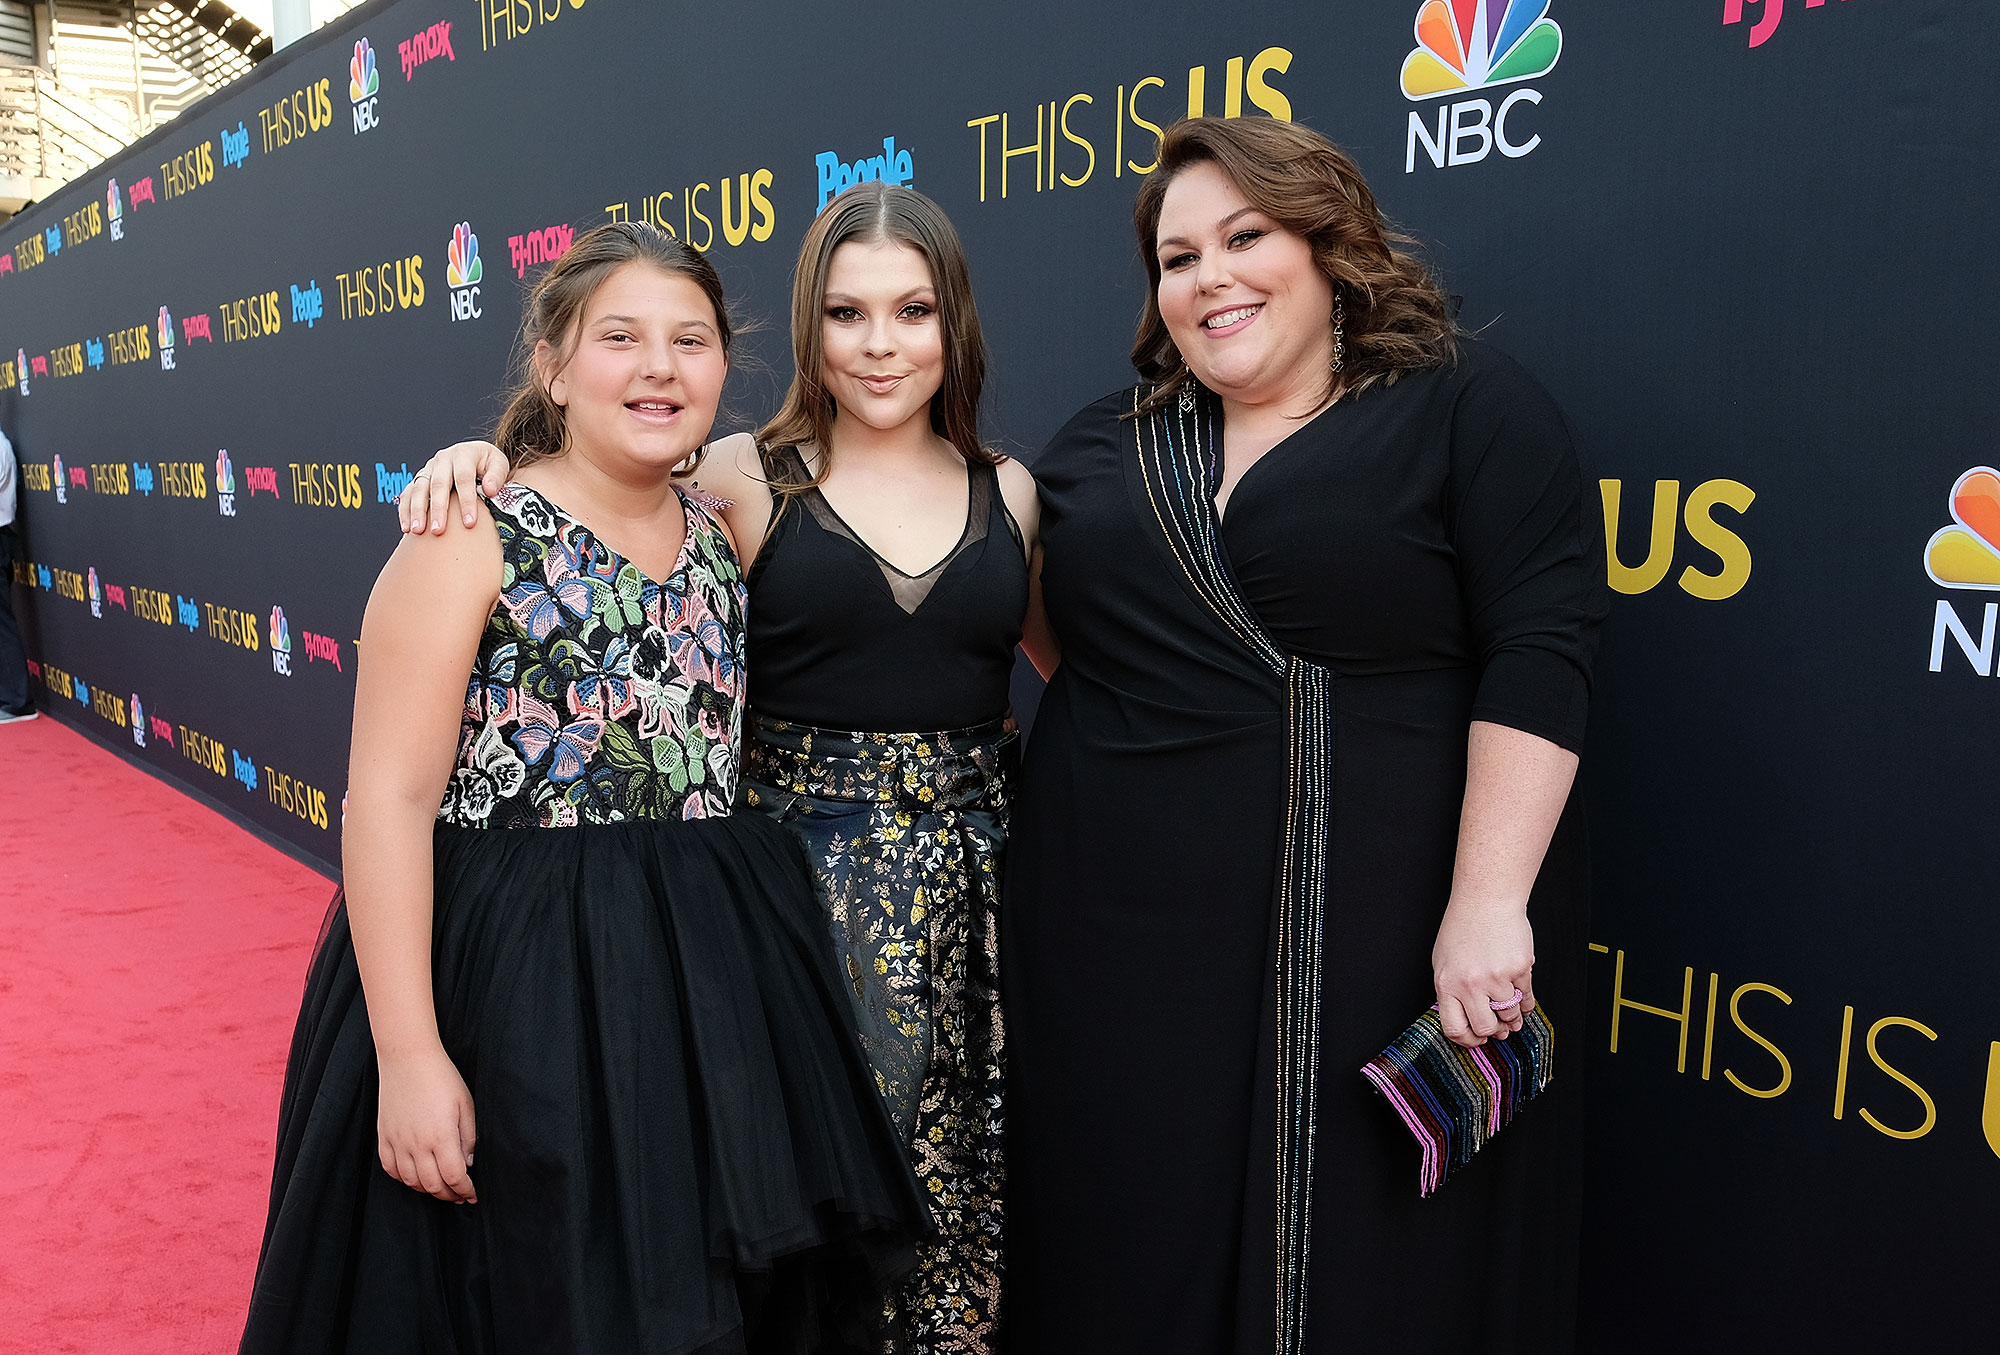 "THIS IS US -- ""This Is Us Season 2 Premiere Event"" at NeueHouse Hollywood in Los Angeles on Tuesday, September 26, 2017 -- Pictured: (l-r) Mackenzie Hancsicsak, Hannah Zeile, Chrissy Metz -- (Photo by: Tyler Golden/NBC)"